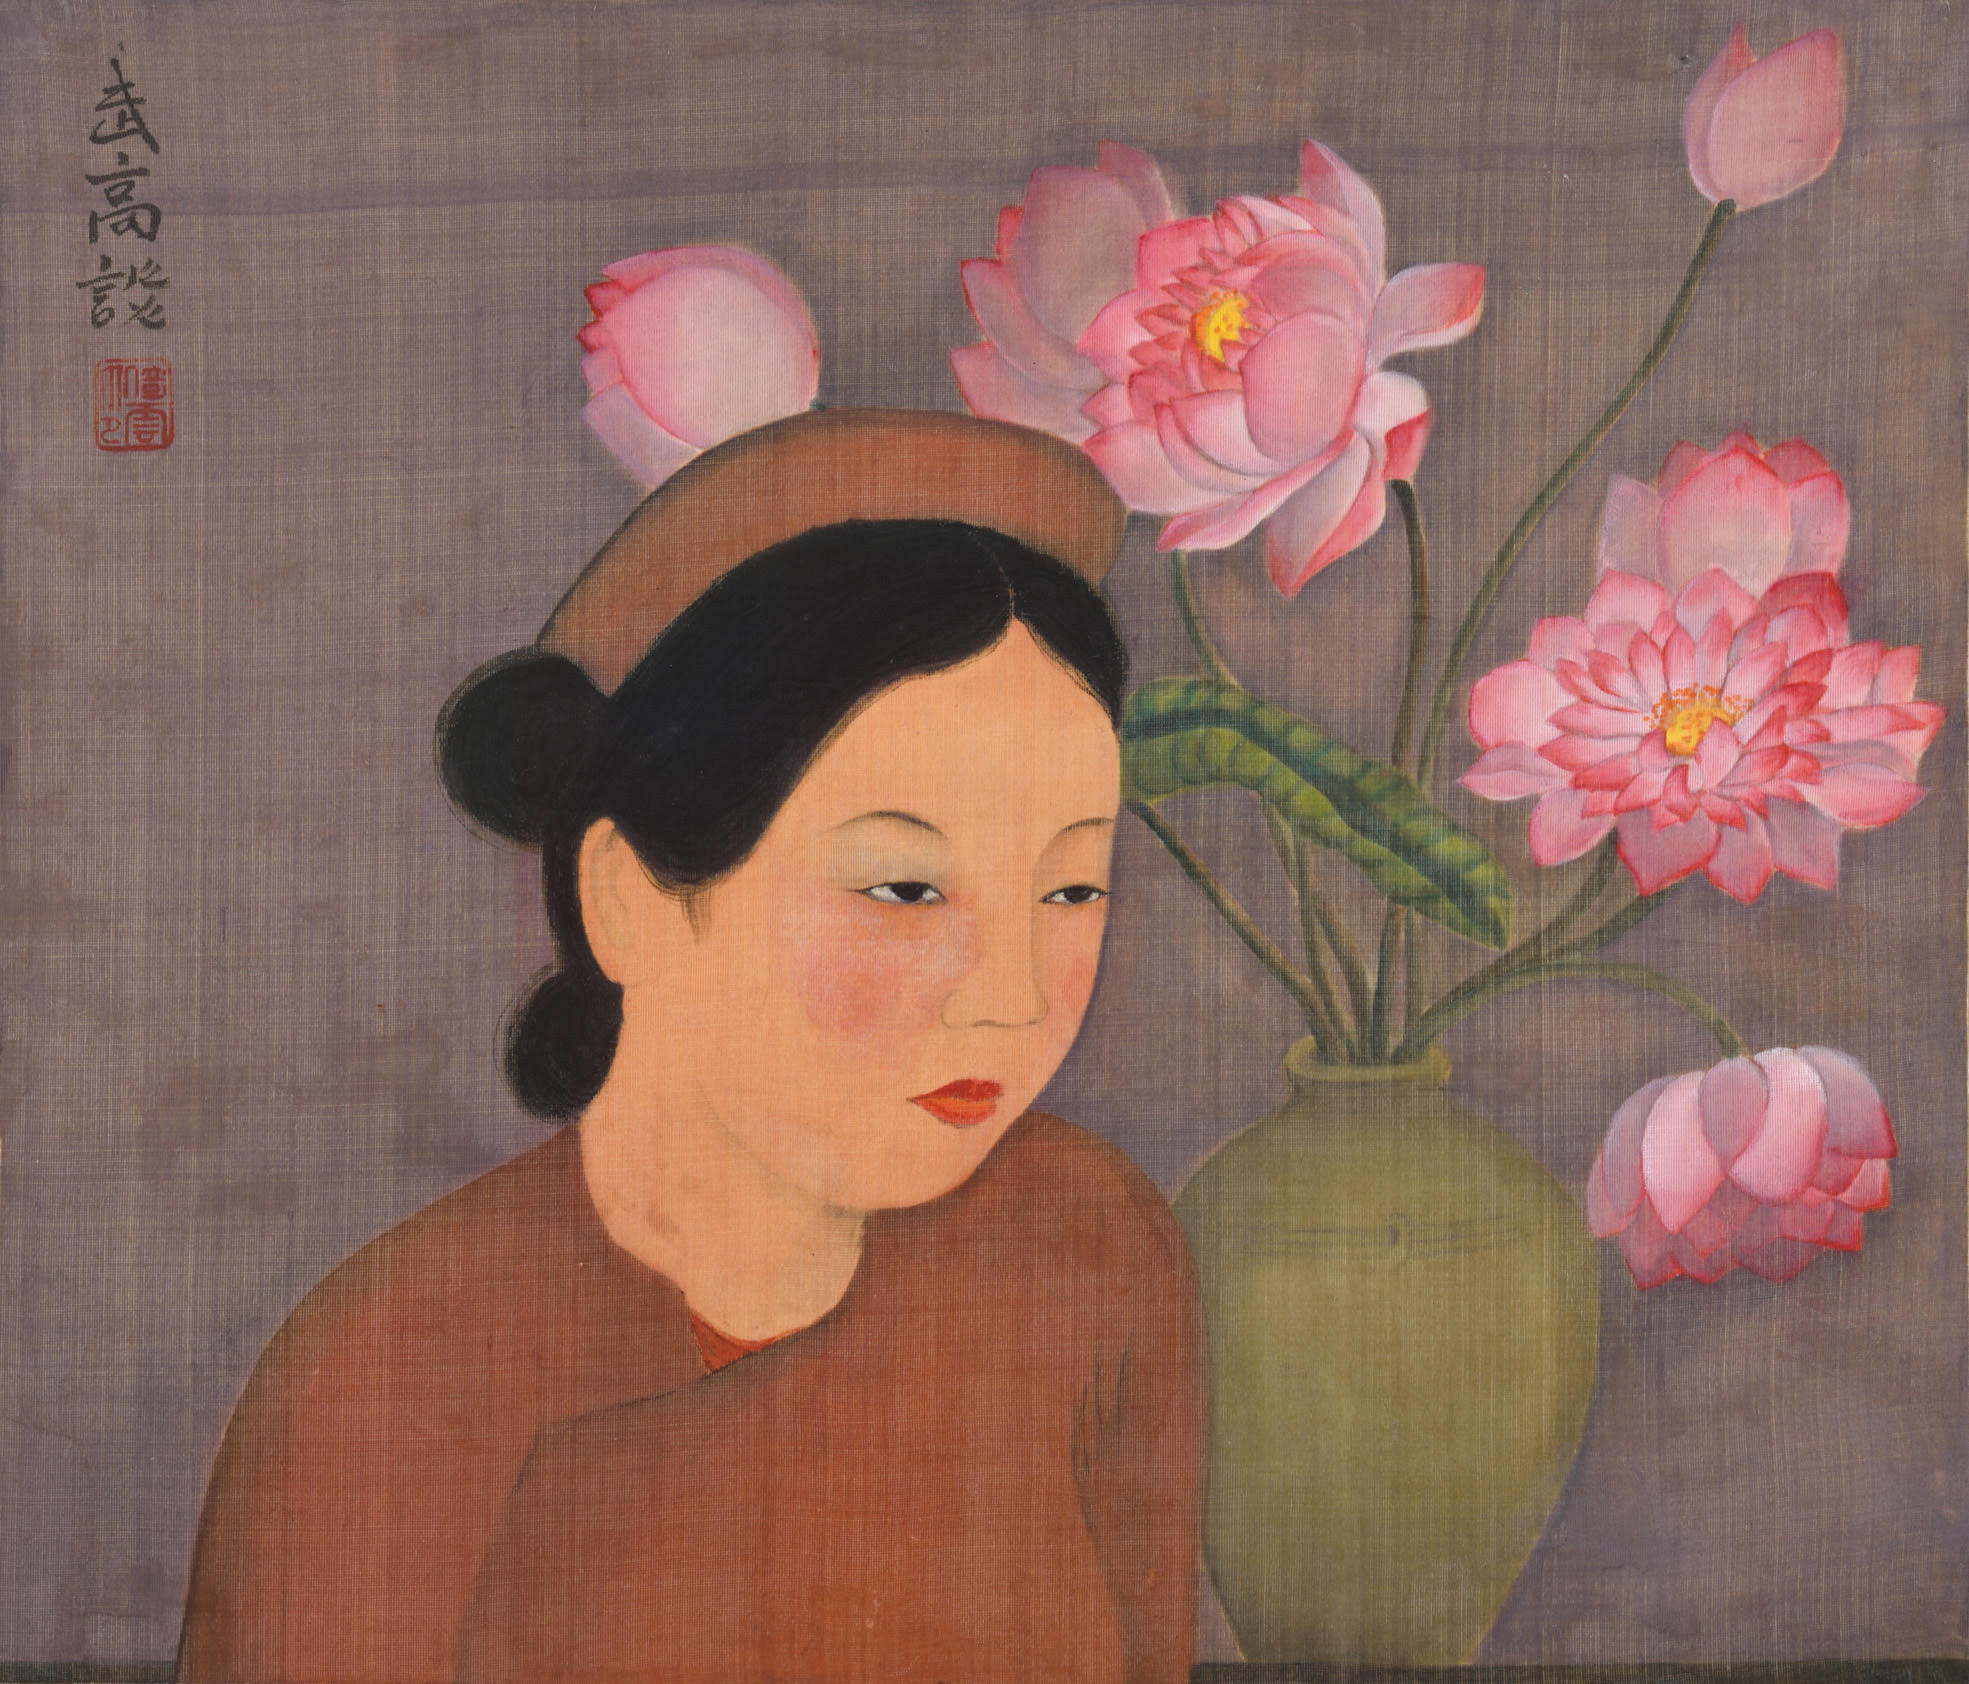 Vu Cao Dam, Portrait d'une jeune fille aux lotus (Portrait of a Young Lady with Lotus), ink and gouache on silk, 56 x 64 cm, c. 1930